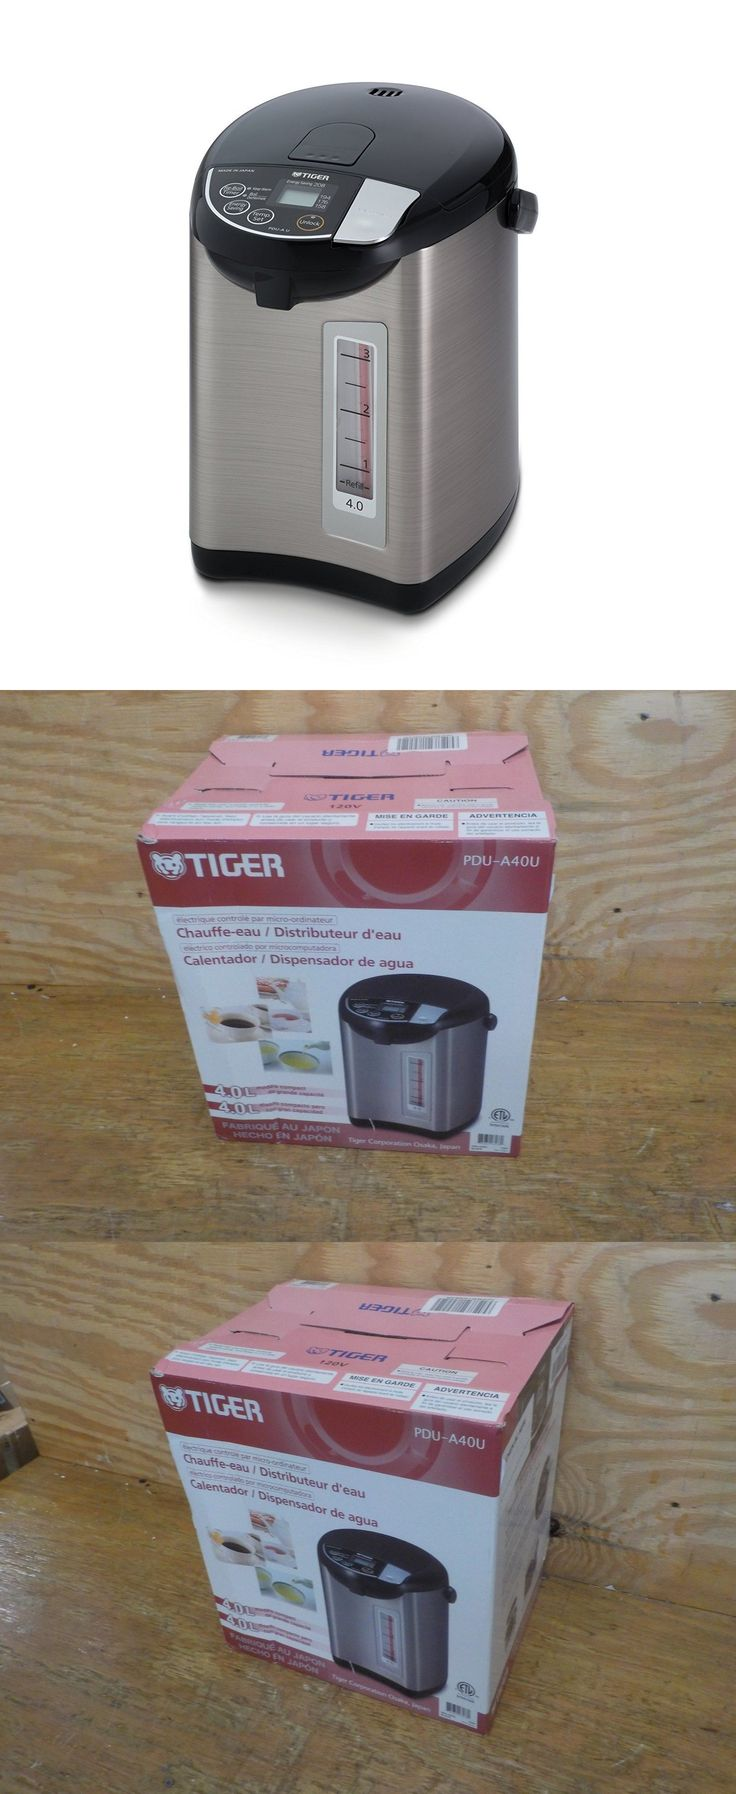 Cookers and Steamers 20672: Tiger Pdu-A40u-K Electric Water Boiler And Warmer, Stainless Black, 4.0-Liter -> BUY IT NOW ONLY: $157.99 on eBay!